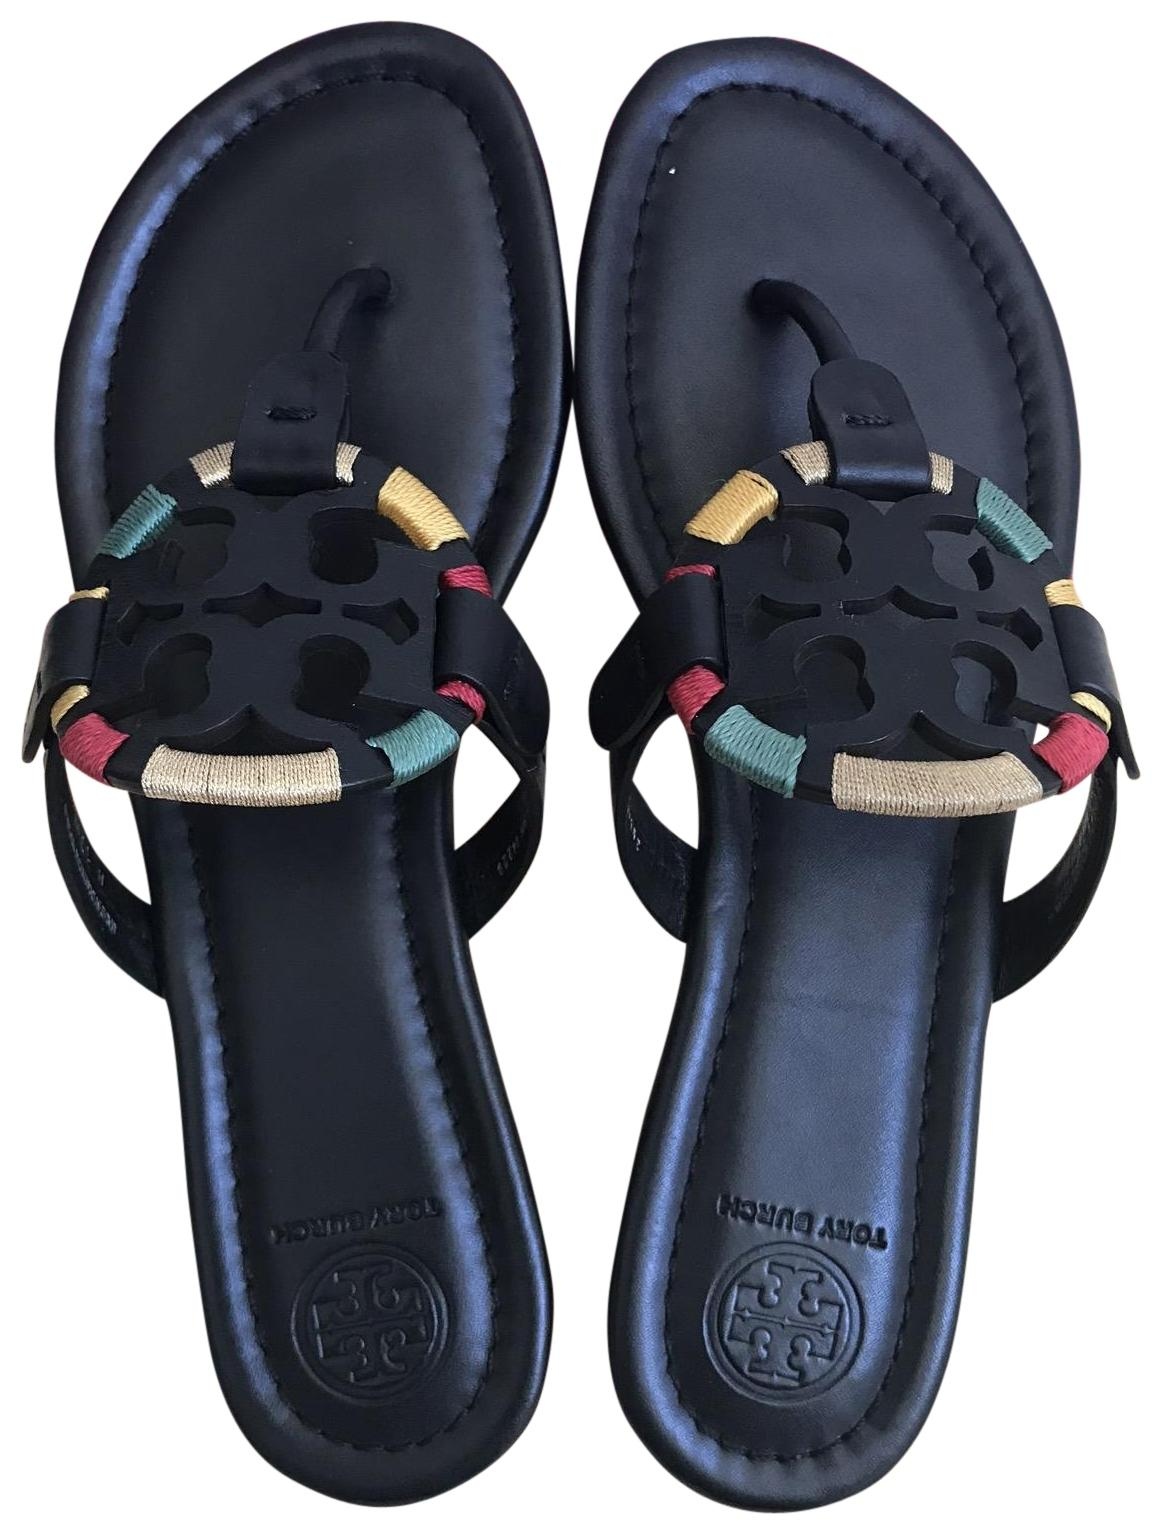 313f04e55 tory-burch-black-embroidered-miller-miller-sandals -size-us-9-regular-m-b-24013882-0-1.jpg